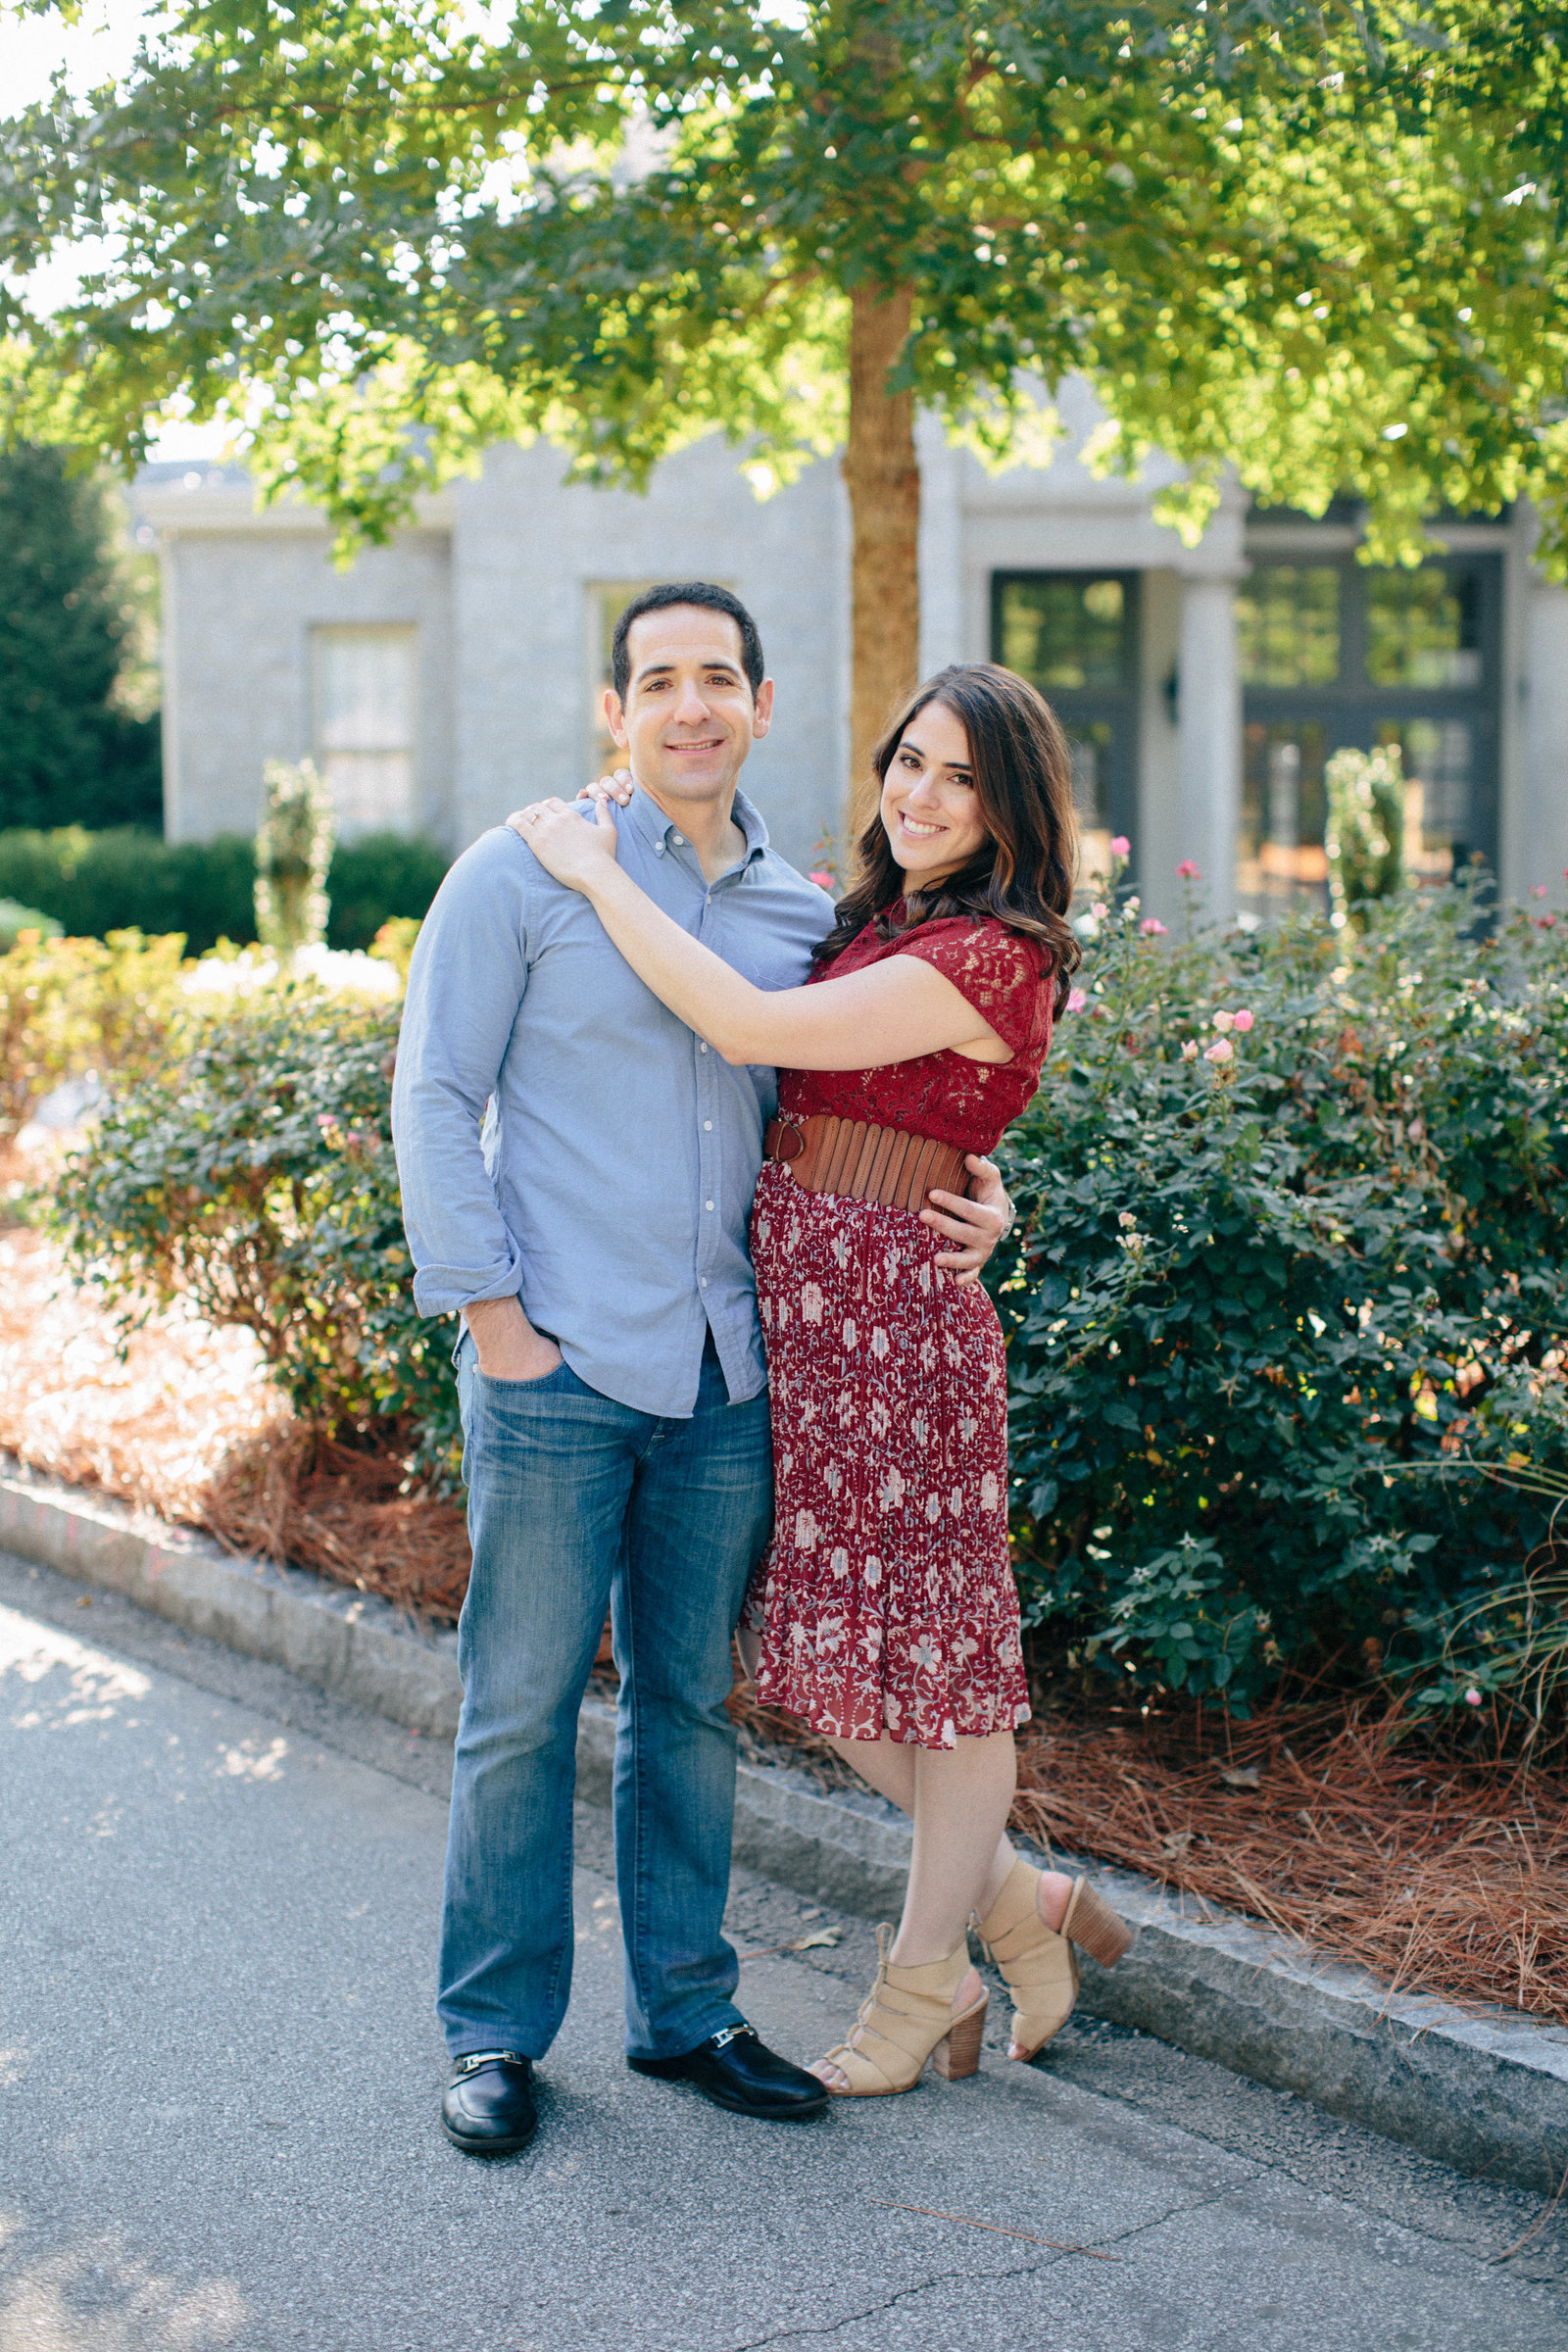 AisPortraits-Piedmont-Park-Atlanta-Engagement-Arielle-Lee-94